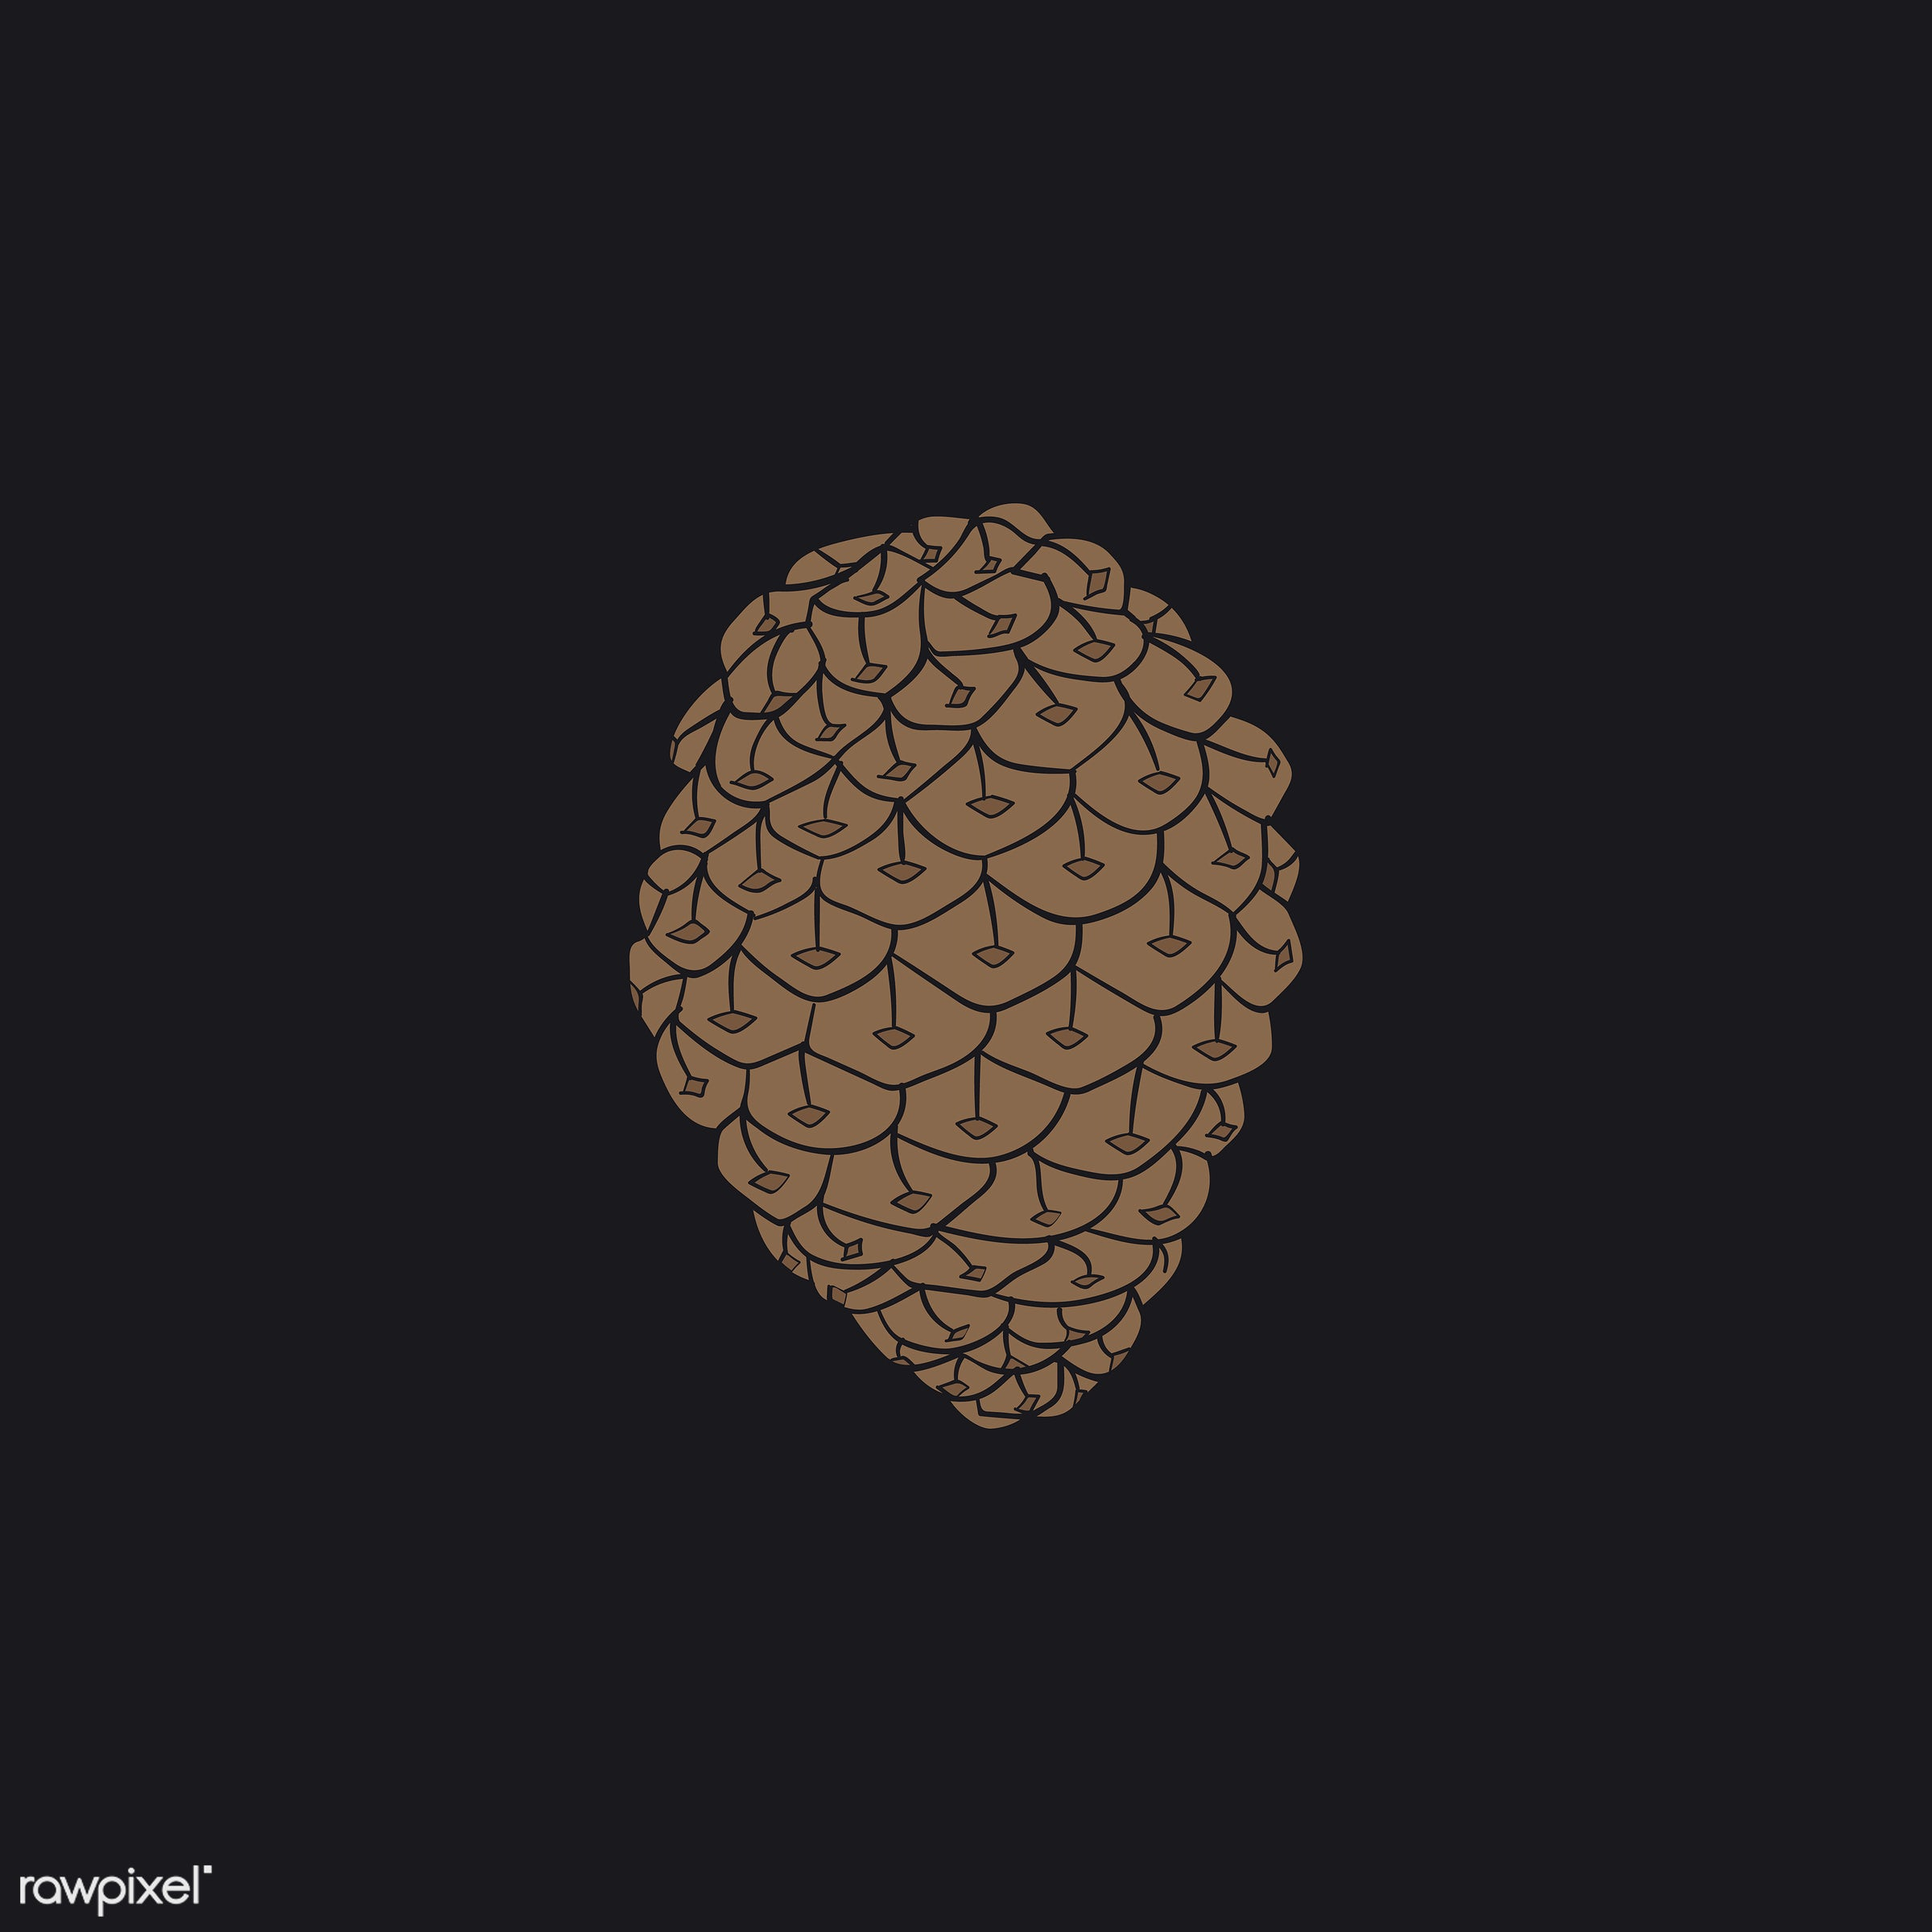 botanical, design, flora, graphic, icon, illustration, isolated, nature, ornaments, plant, vector, pine, pinecones,...